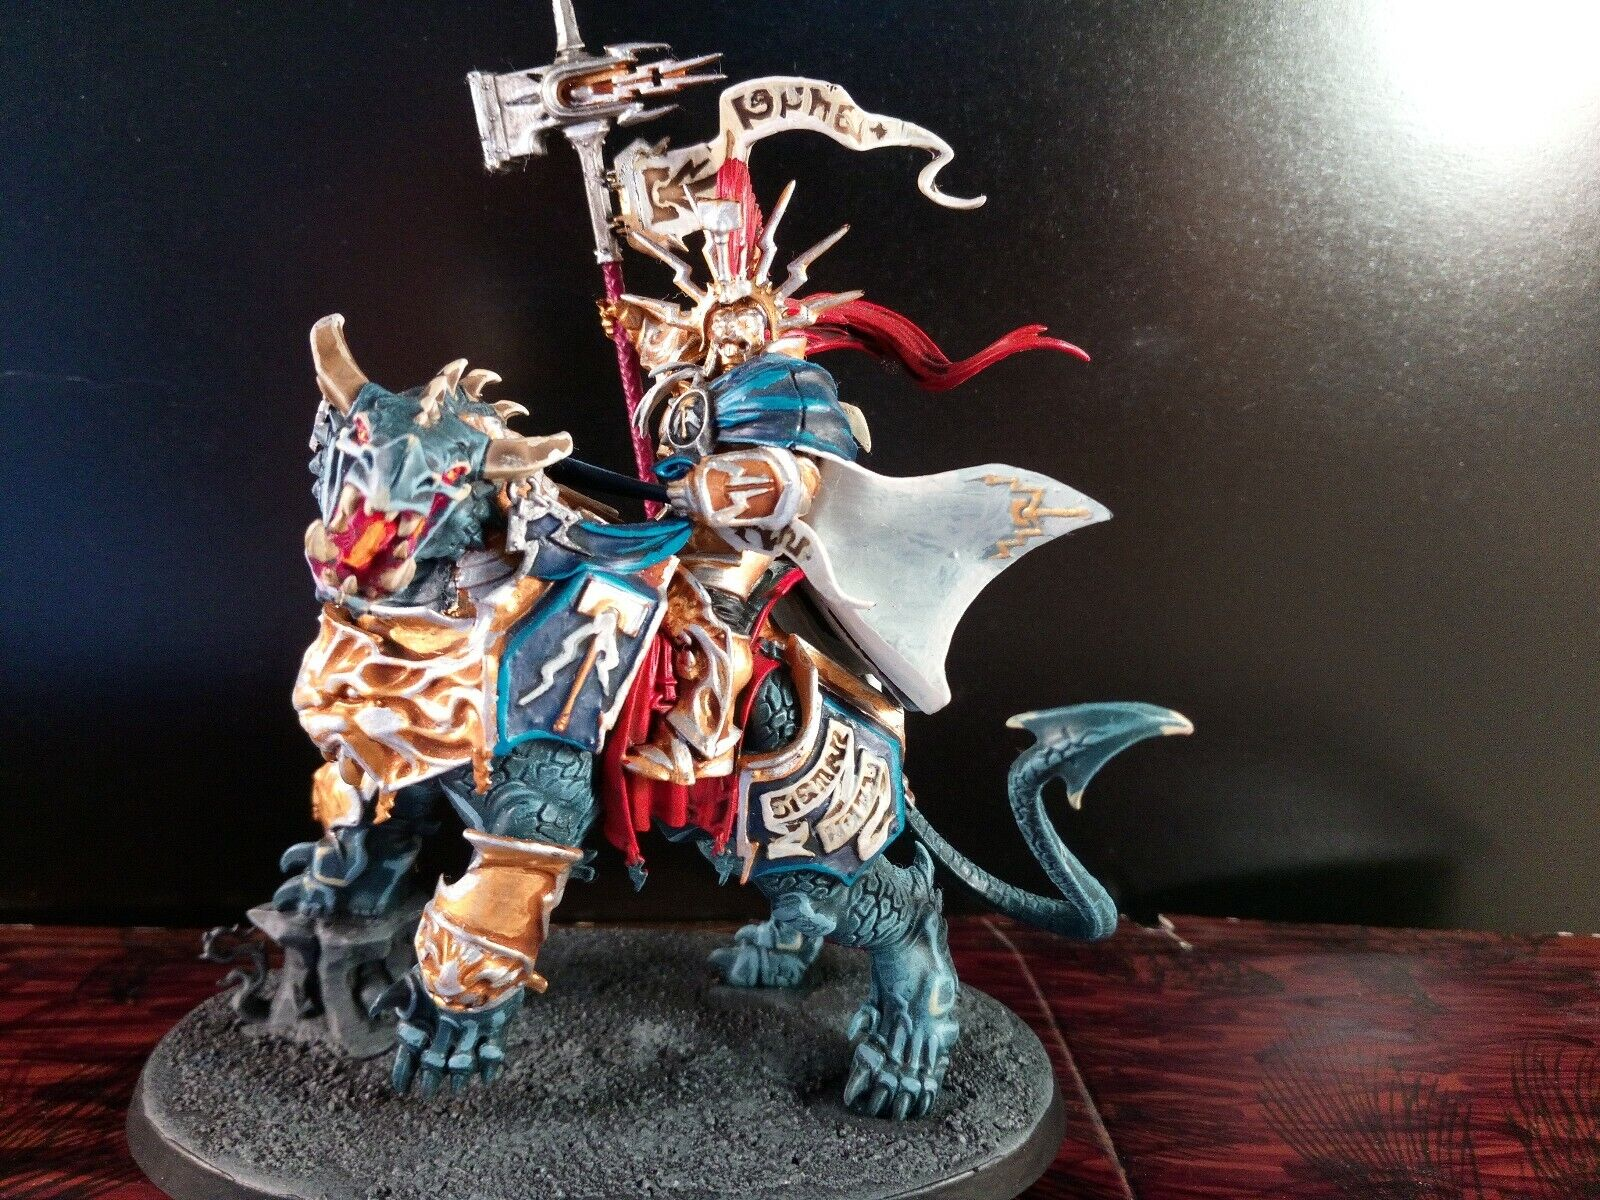 A35 Warhammer Age  of Sigmar LORD CELESTANT ON DRACOTH Stormcast plastica  Miglior prezzo